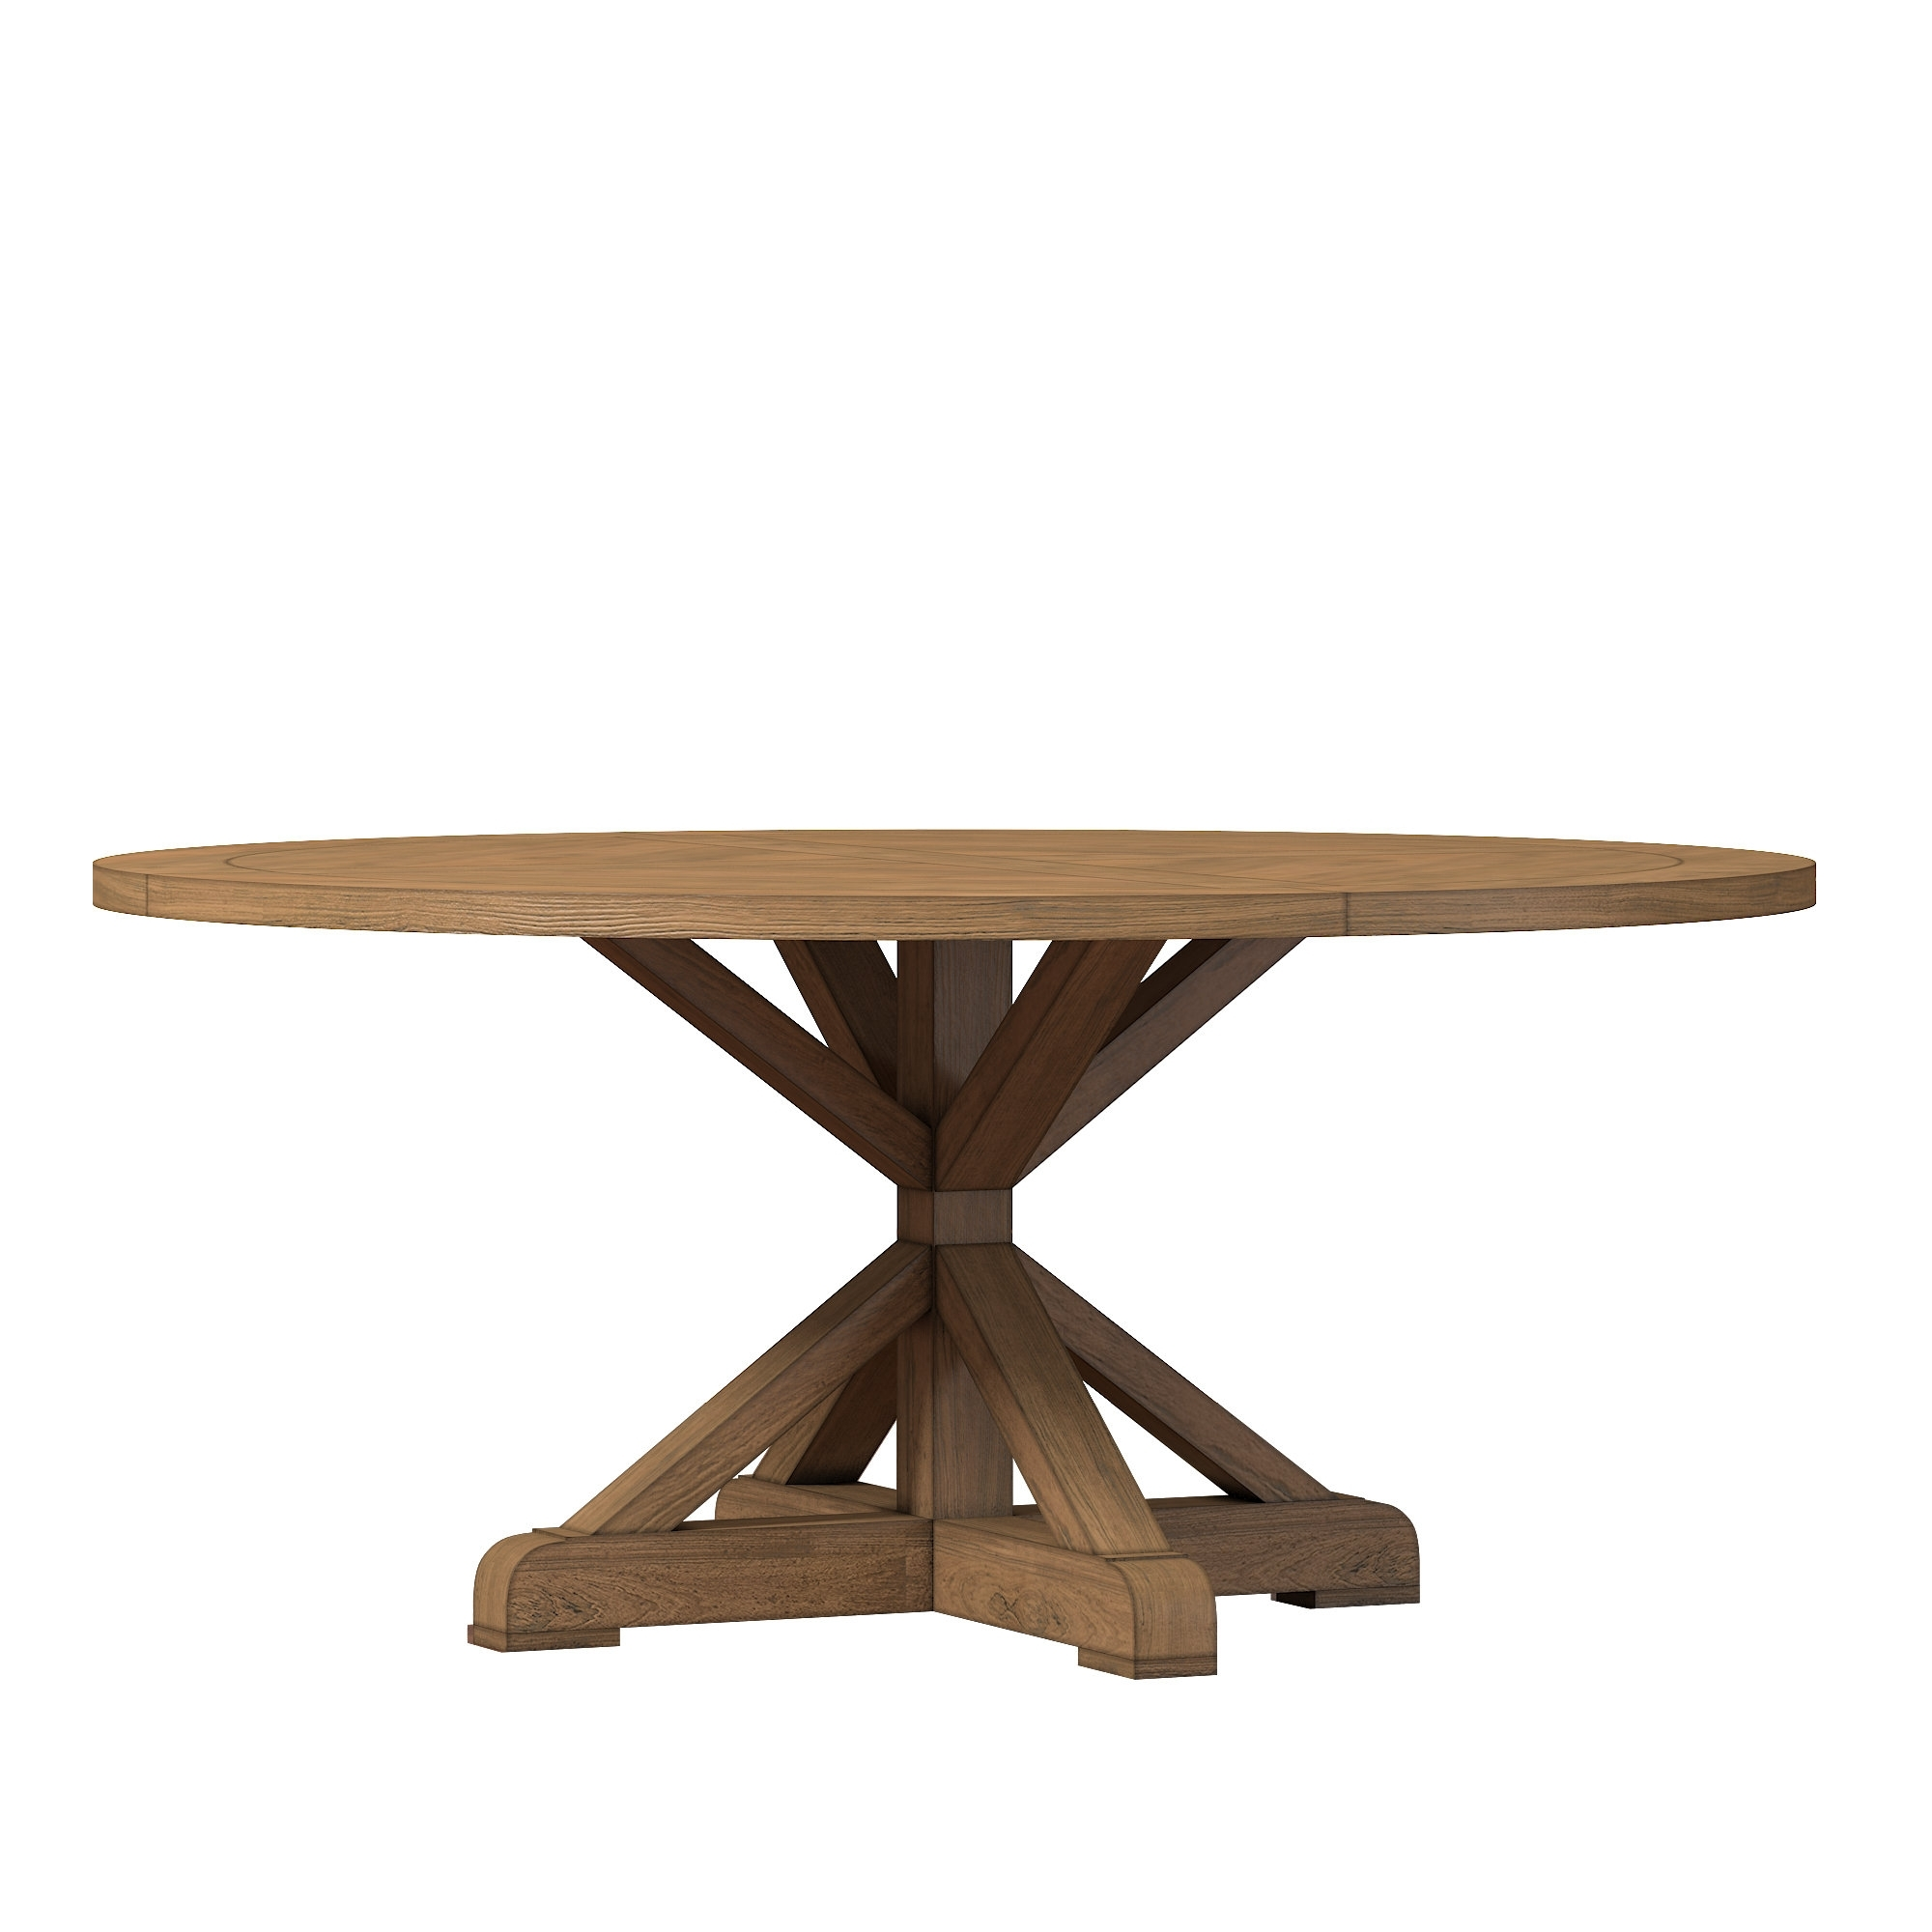 Rustic Dining Tables Within Newest Lark Manor Peralta Round Rustic Dining Table & Reviews (View 23 of 25)